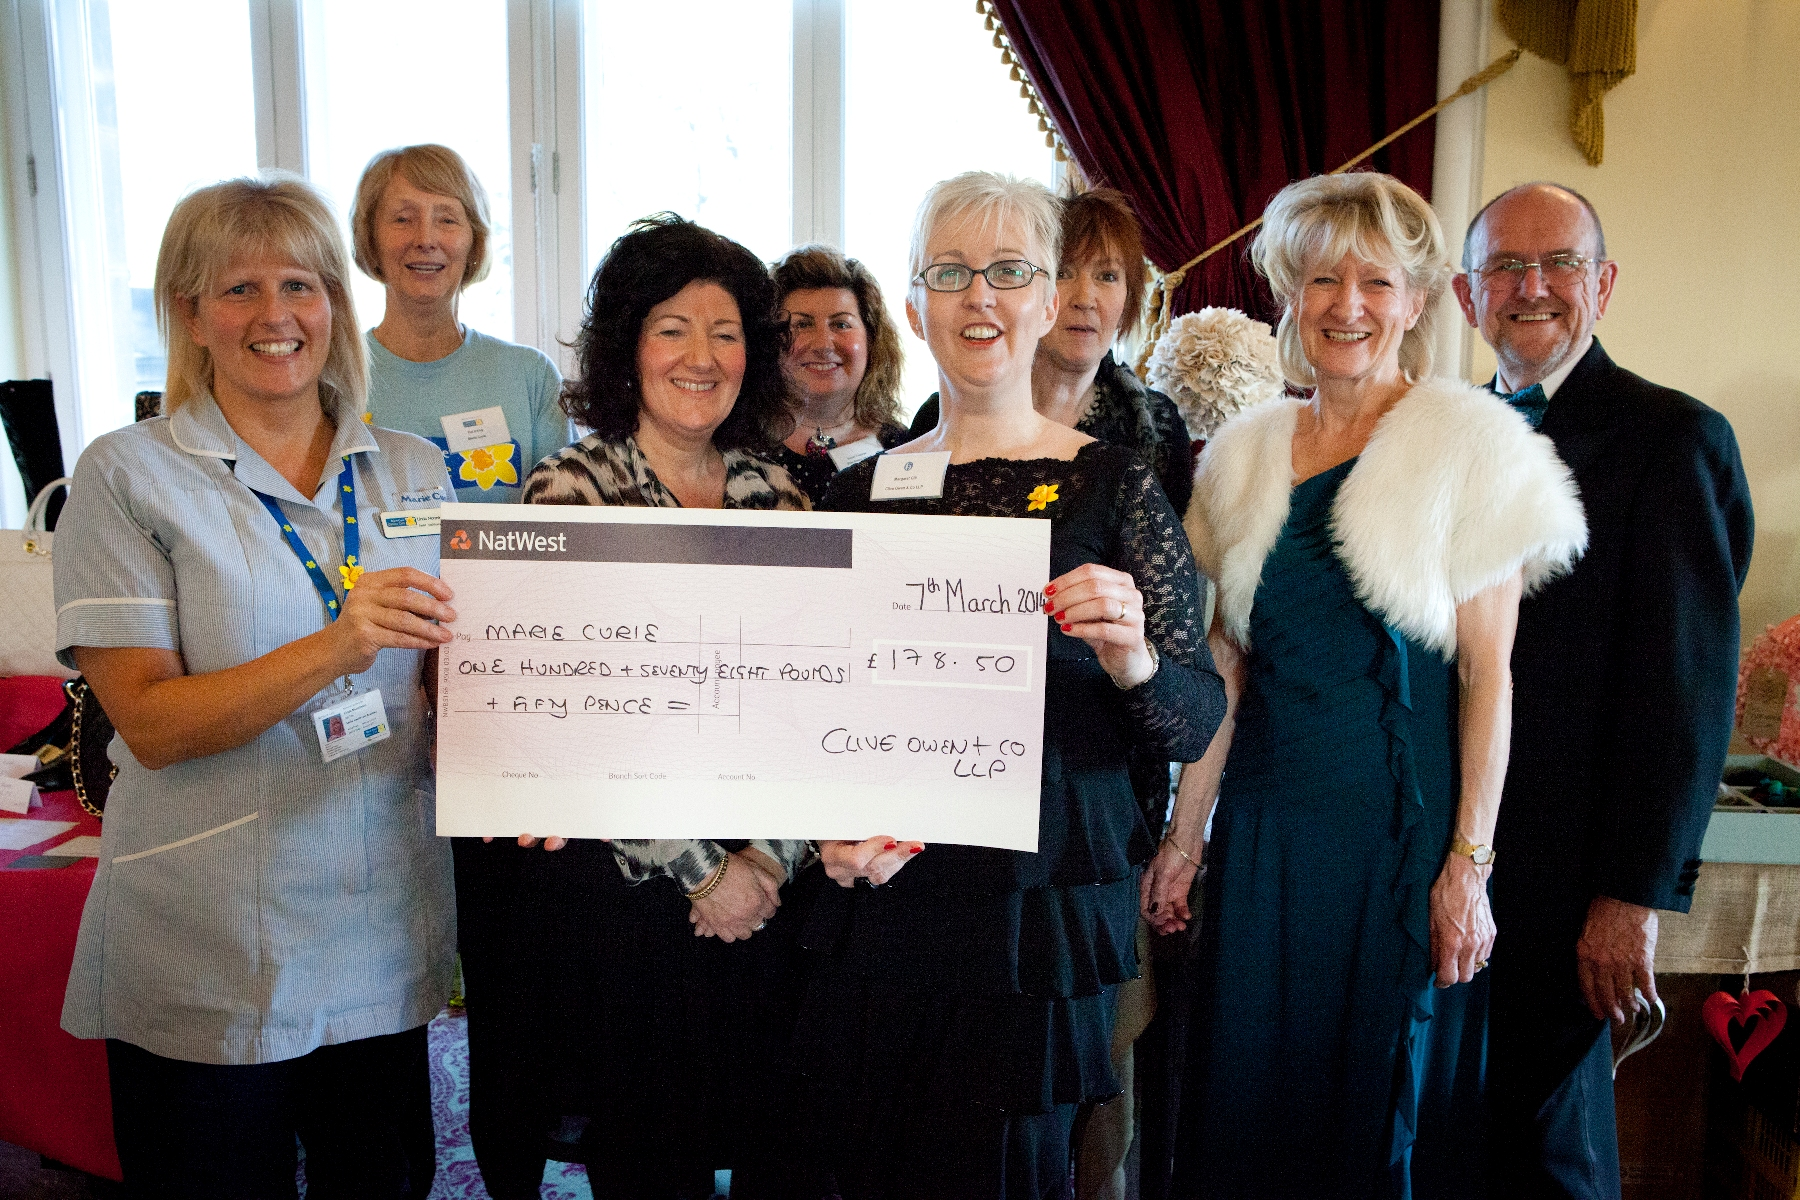 FUNDS RAISED: From left, Linda Normington, a Marie Curie nurse, Pat Irving, Marie Curie fundraising coordinator, Carol Noble, of Shoe Sisters, Susan Freeman, of Shoe Sisters, Margaret Gill of Clive Owen & Co LLP, Mairi Kennedy, of Raggy Badge